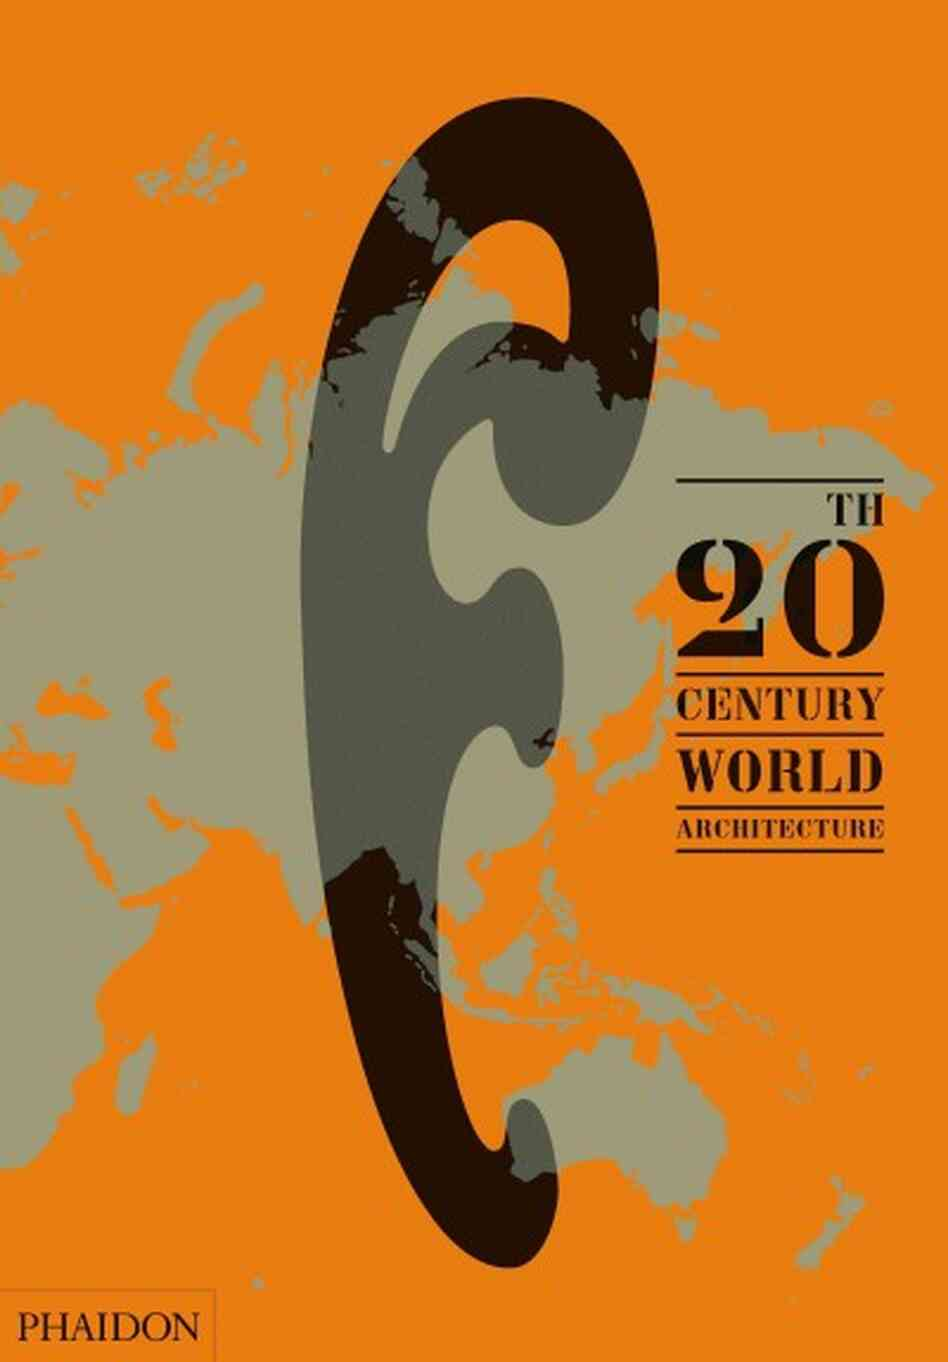 The 20th-Century World Architecture